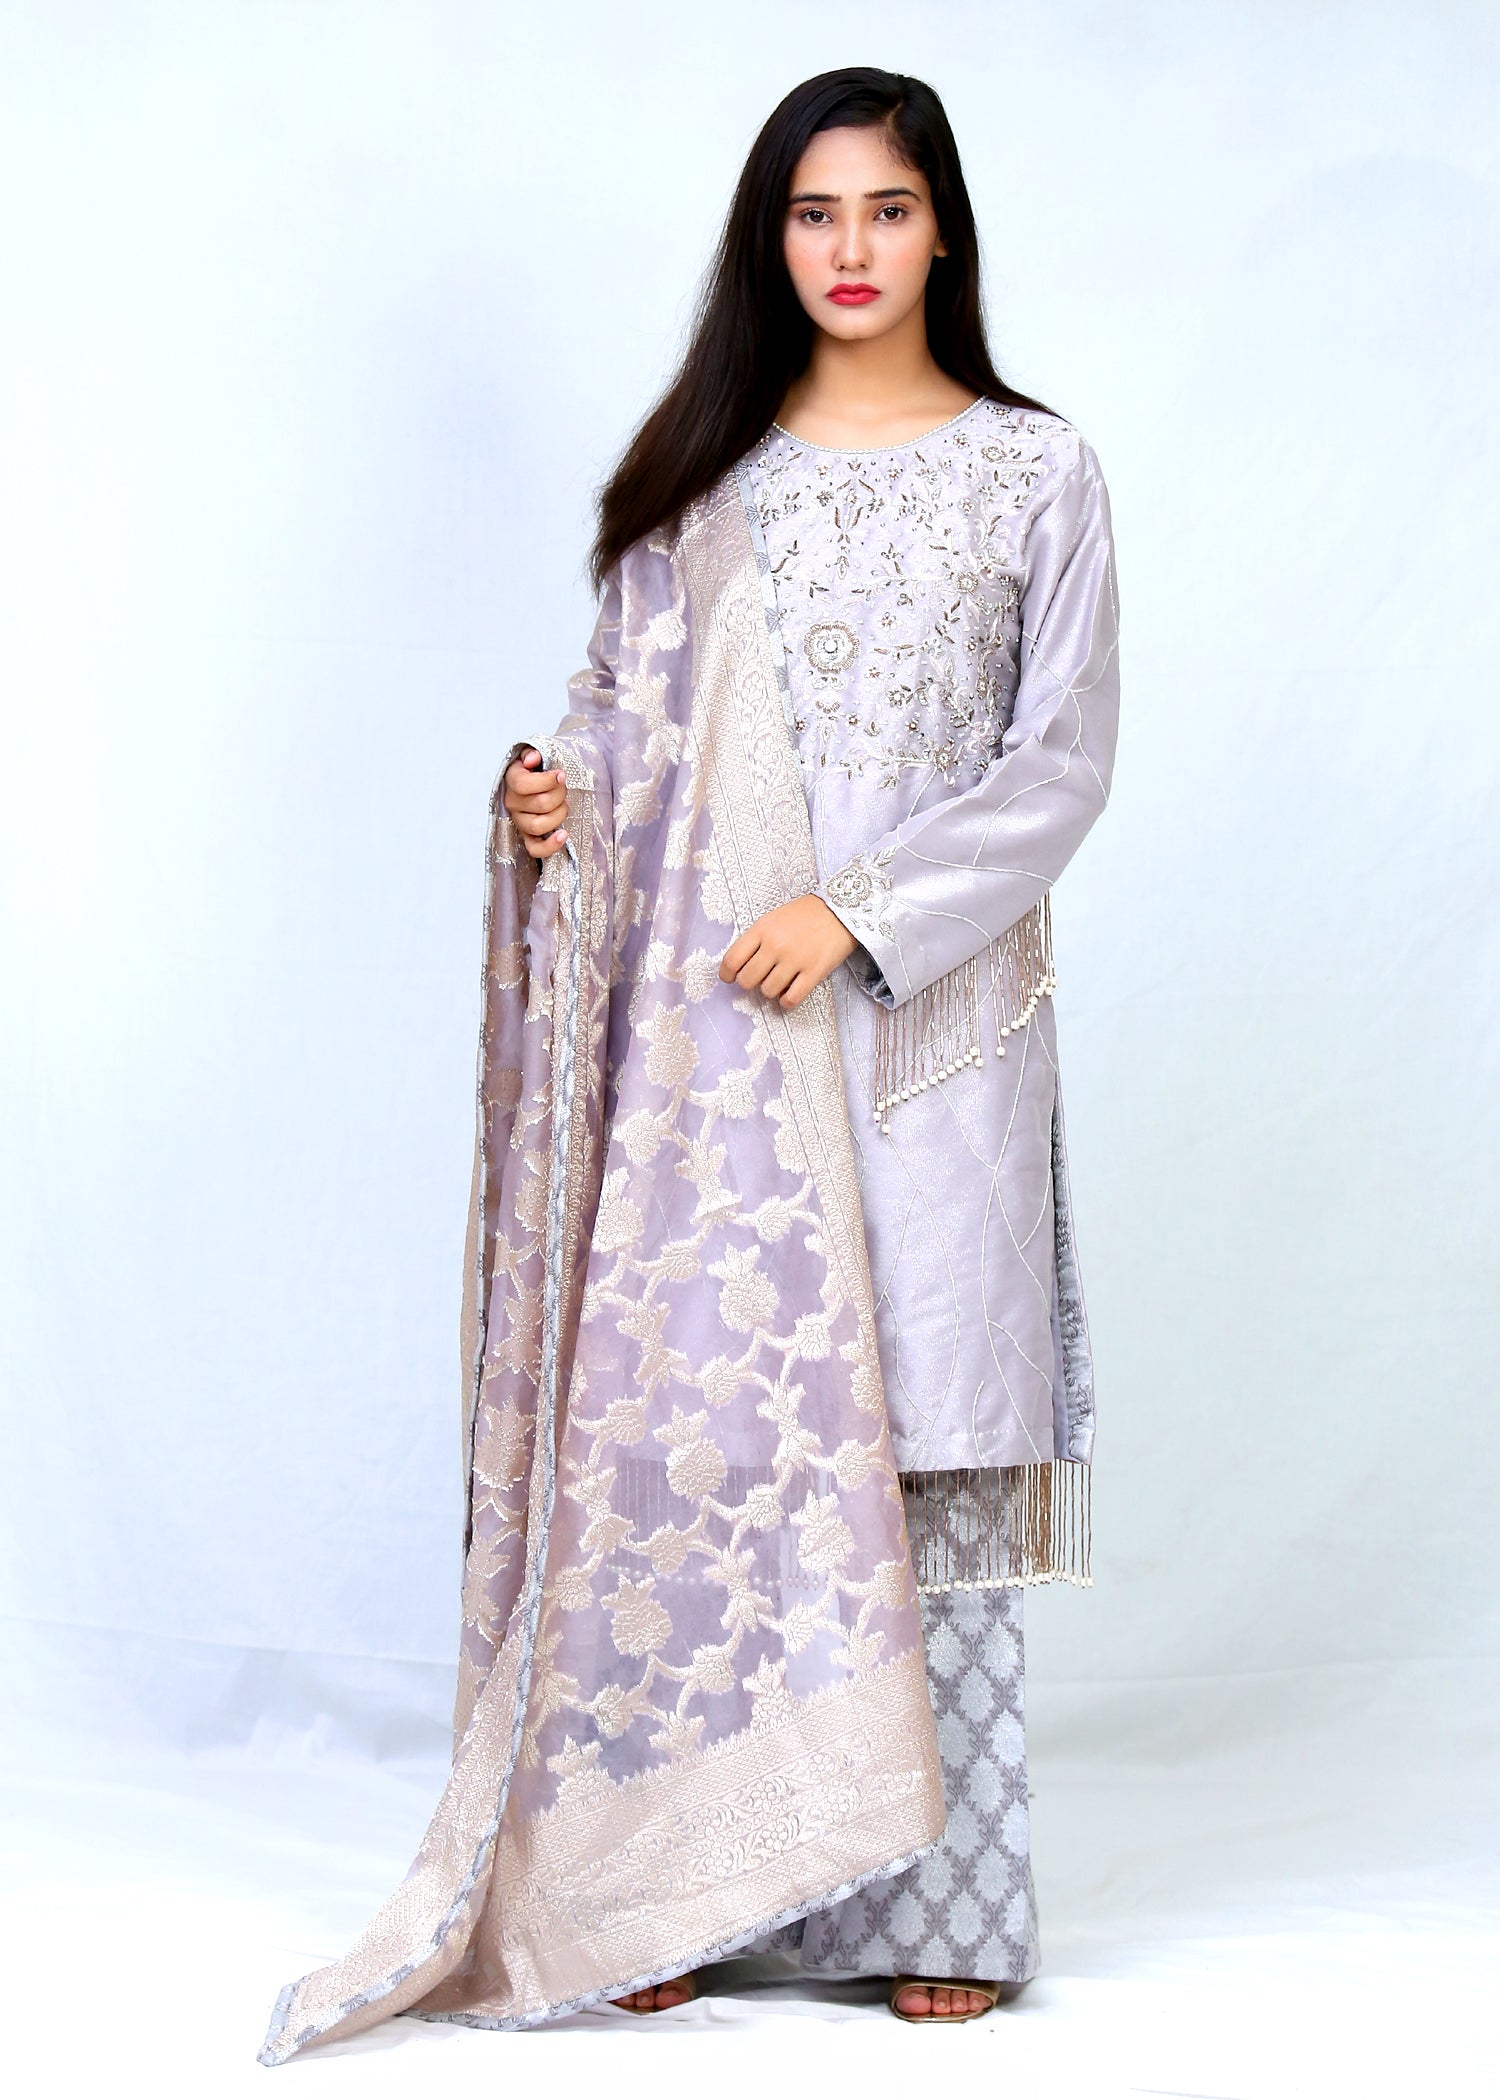 Tissue Hand Work Shirt With Tassels, Banarsi Trouser & Dupatta